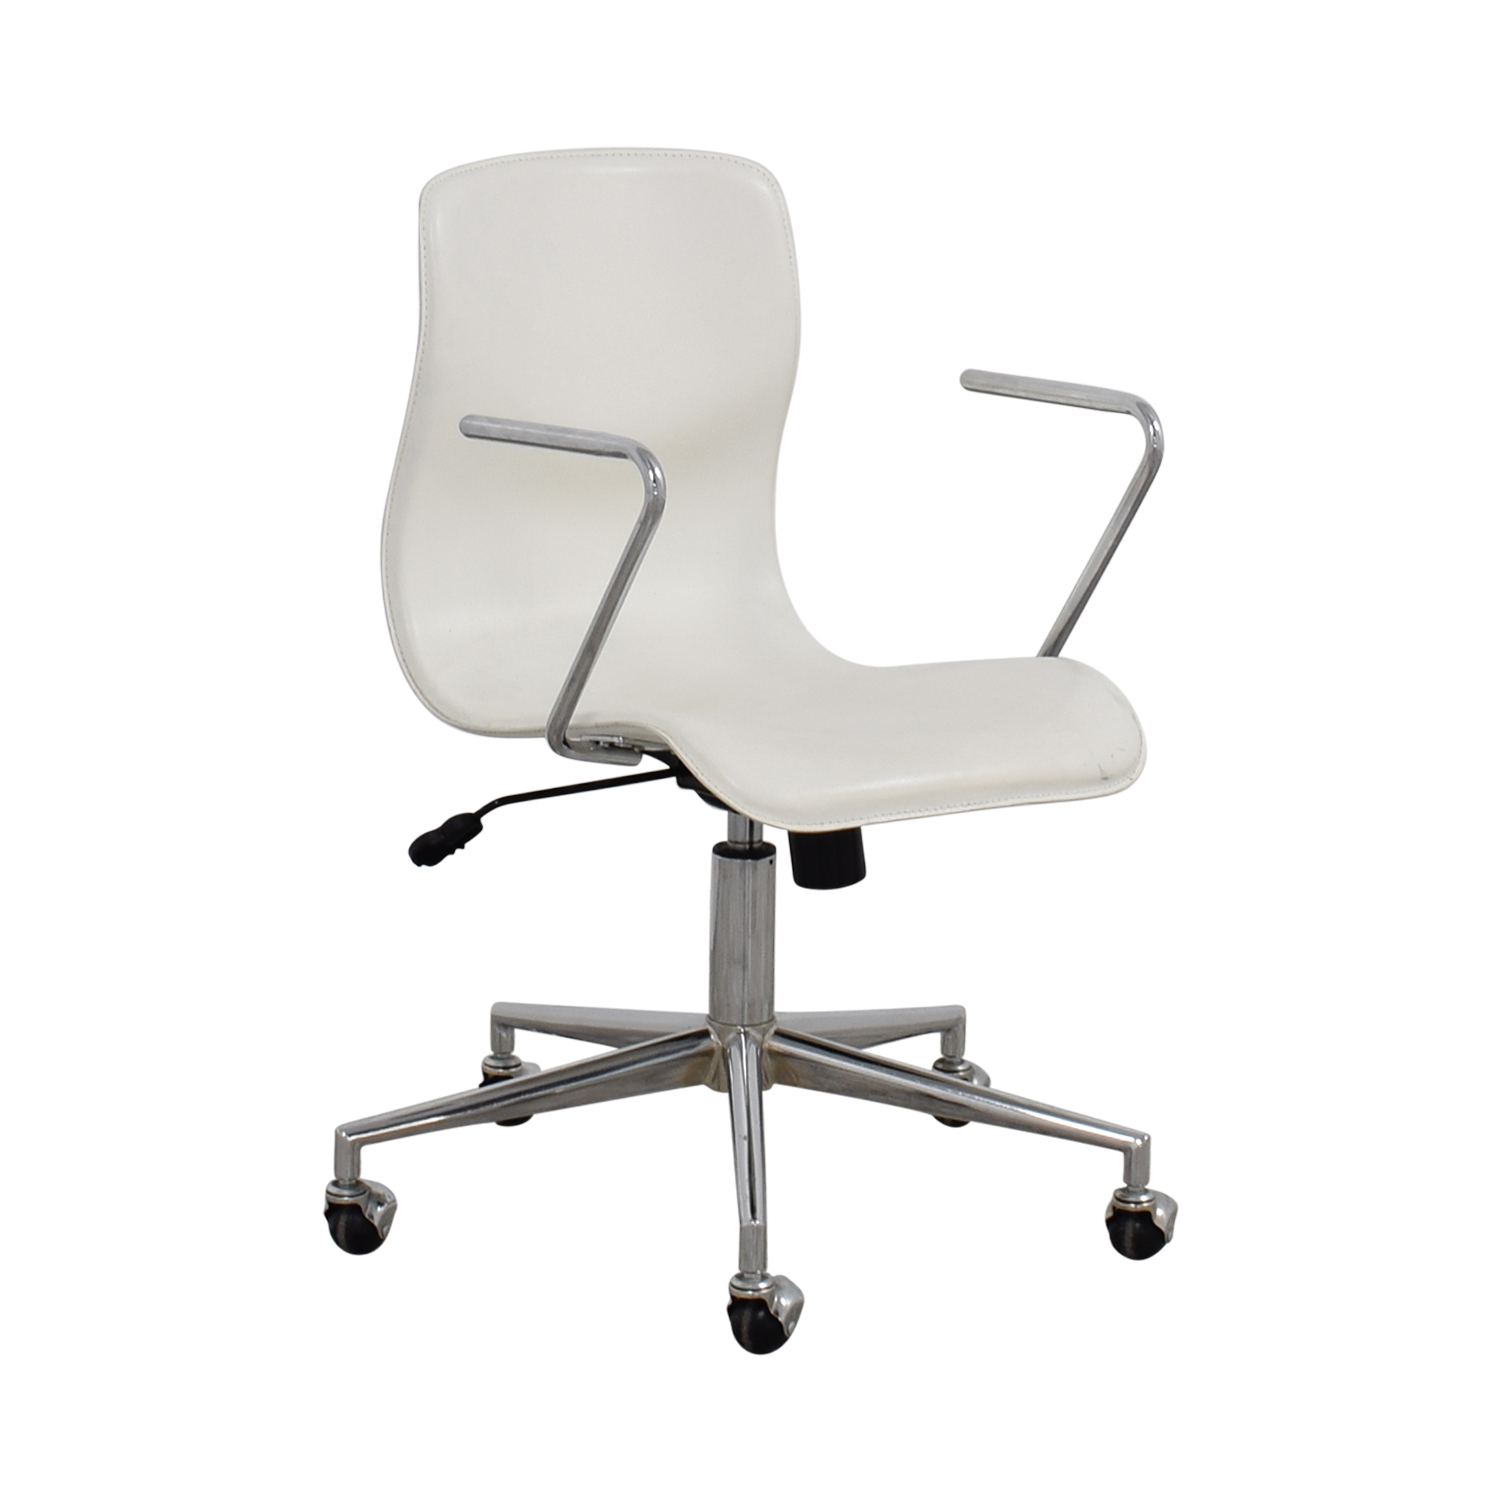 36 Off White Office Chair Chairs